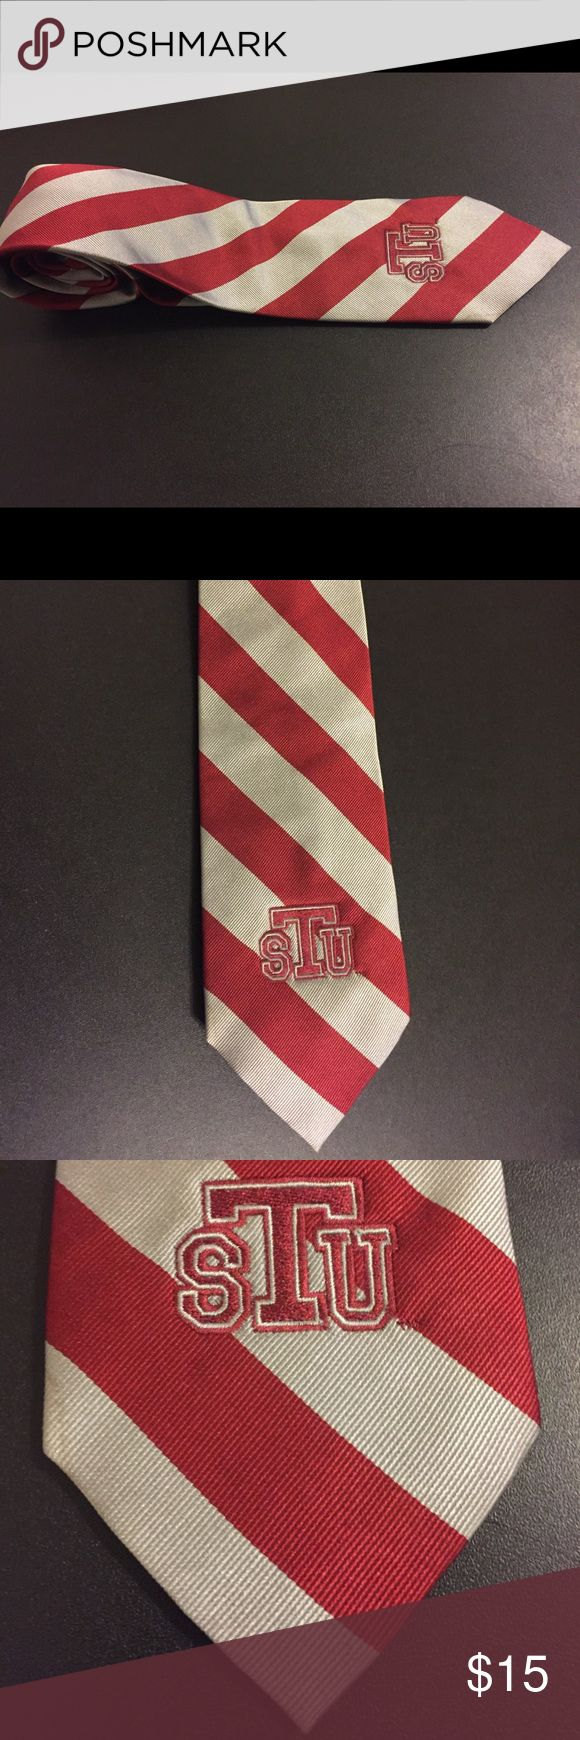 St. Thomas University STU College Classic Tie St. Thomas University STU Striped Tie  Men's Size: 58in Style: Classic Color: White/Red Brand: College Classic Condition: Pre Owned  Any questions, please ask!  JG. MINISTRIES College Classics Accessories Ties